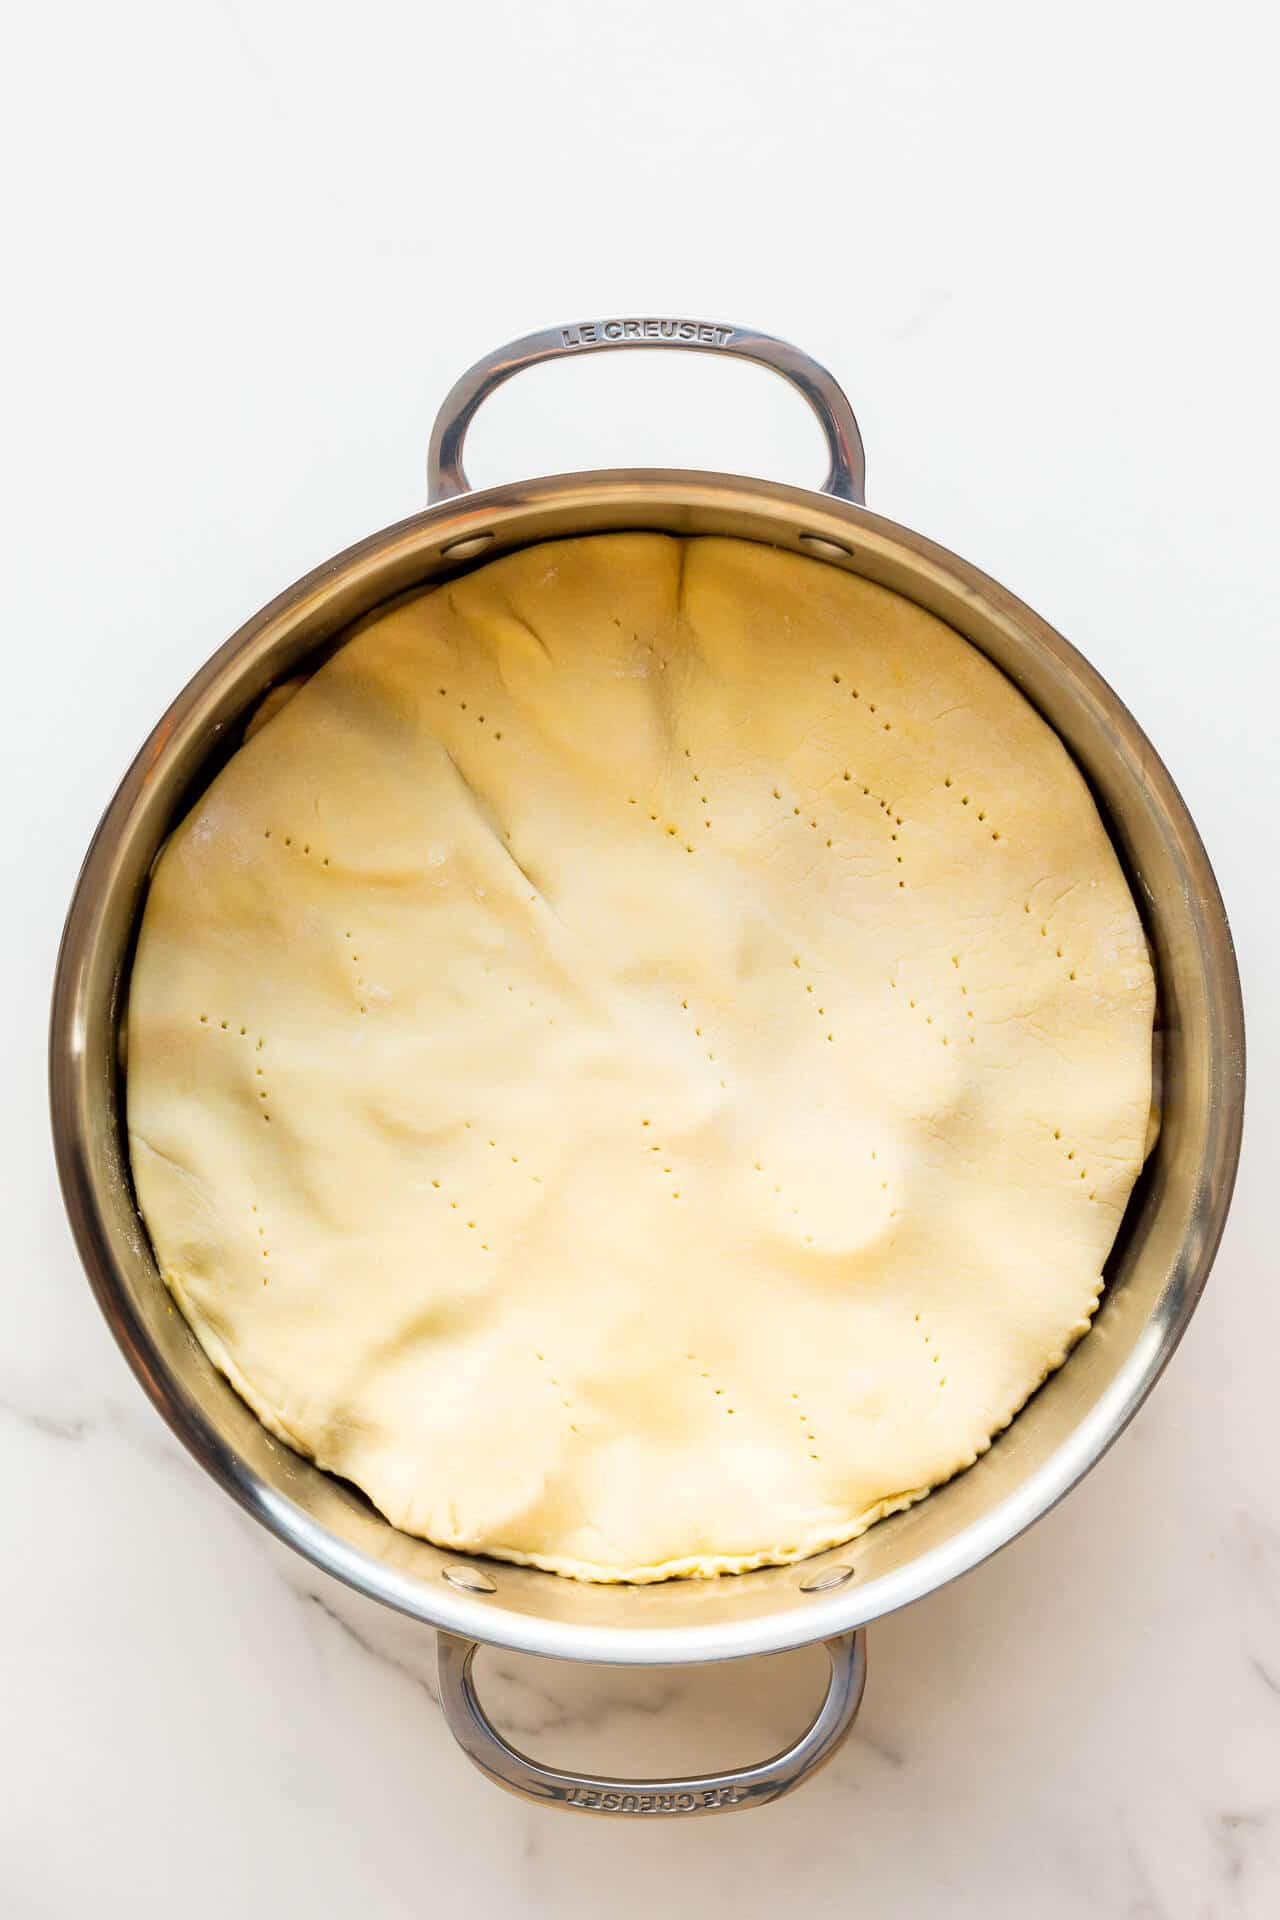 A pan with apples topped with pastry ready to be baked to make an apple tarte tatin.